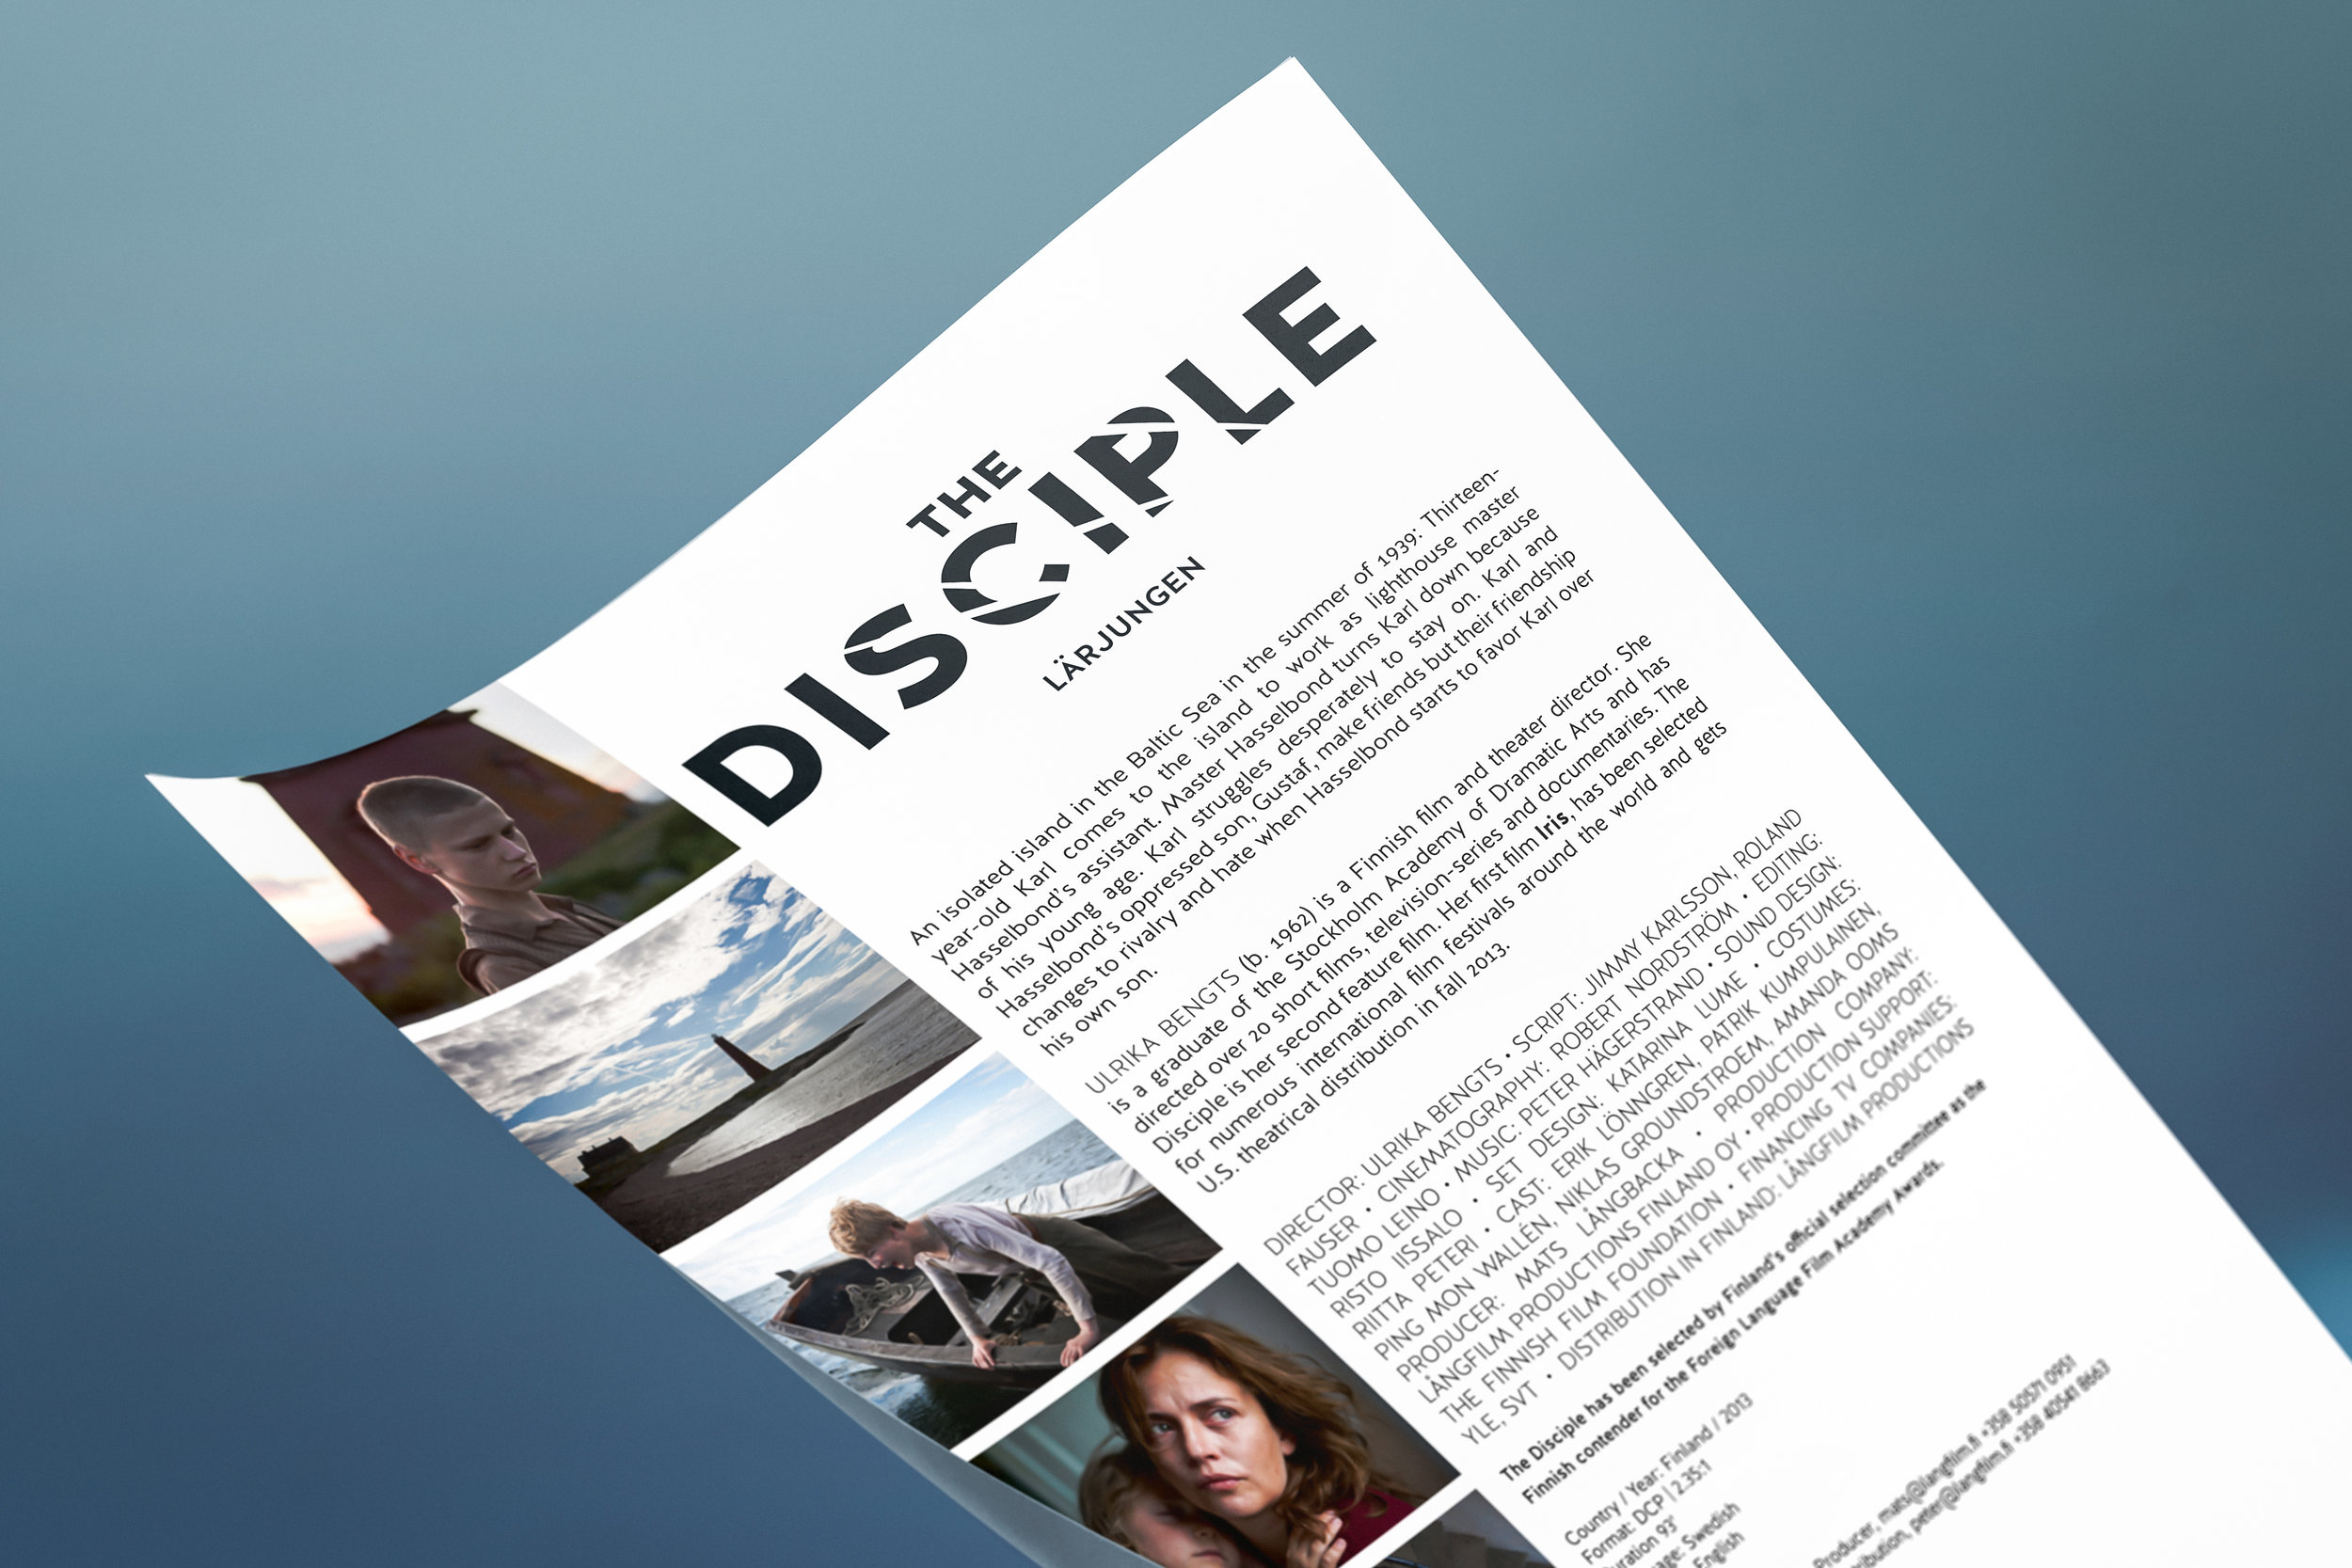 The Disciple — Heidi Gabrielsson